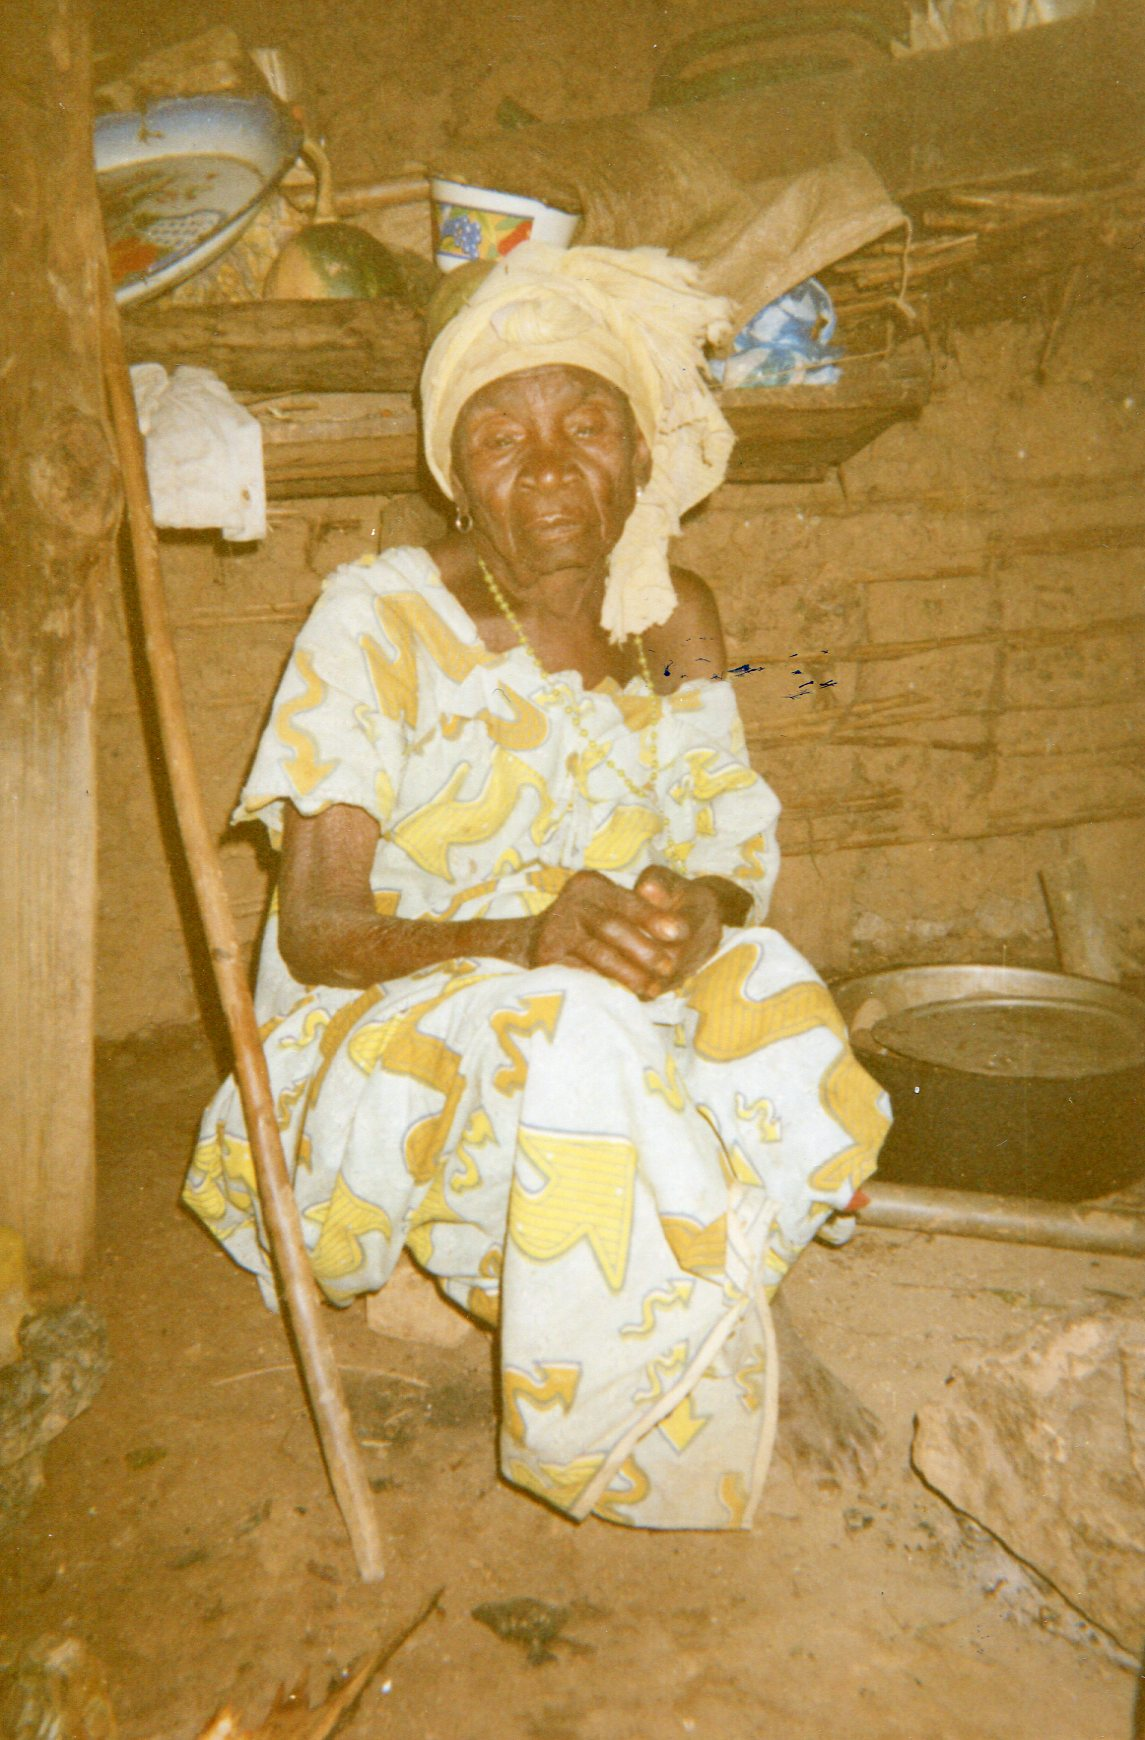 A 95-year-old widow living in her misery.